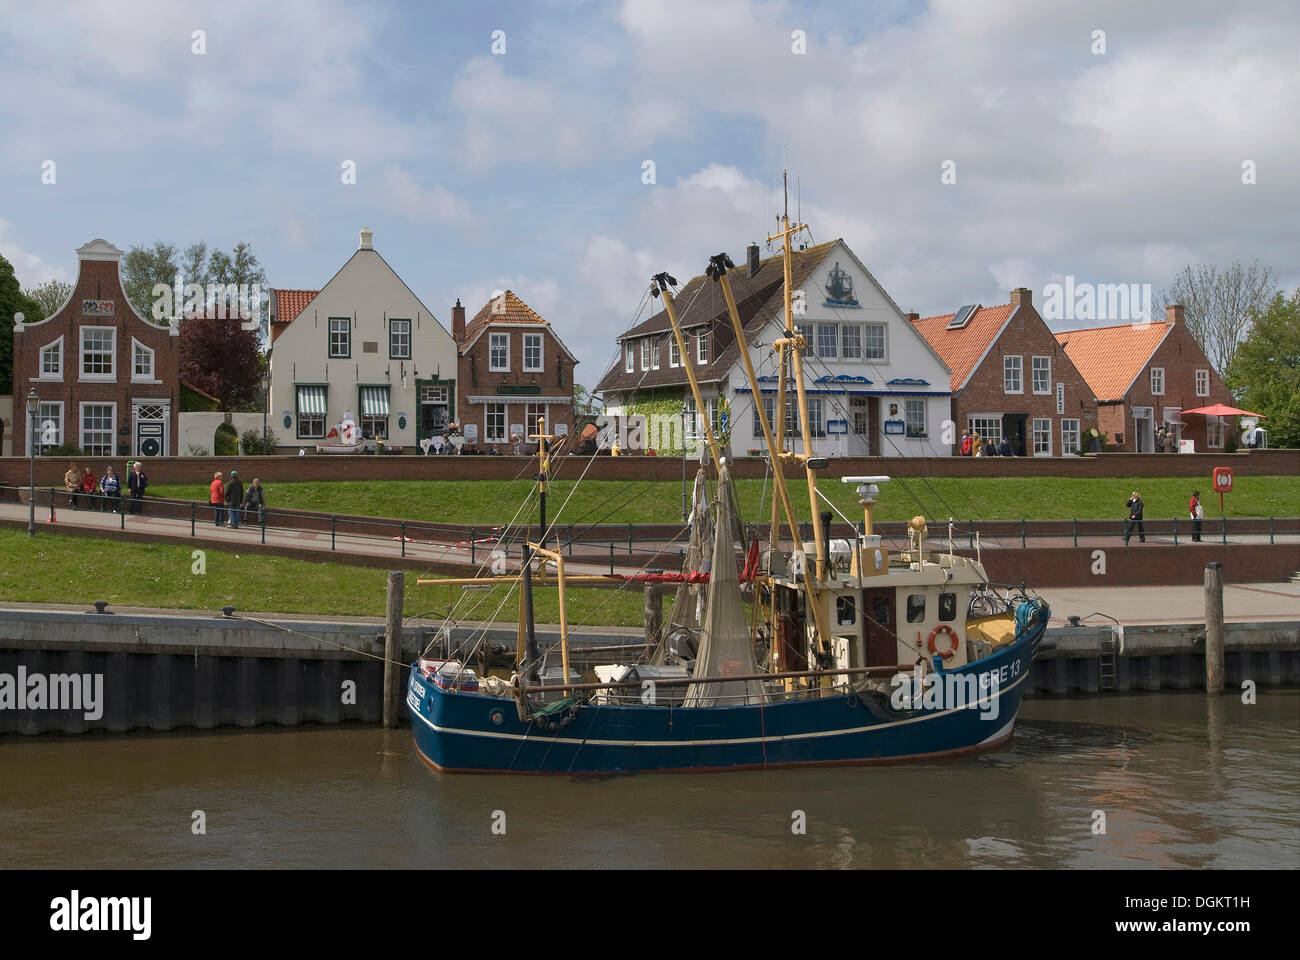 Shrimp boats in Greetsiel Harbour in front of the old dike, Krummhoern, East Frisia, Lower Saxony - Stock Image